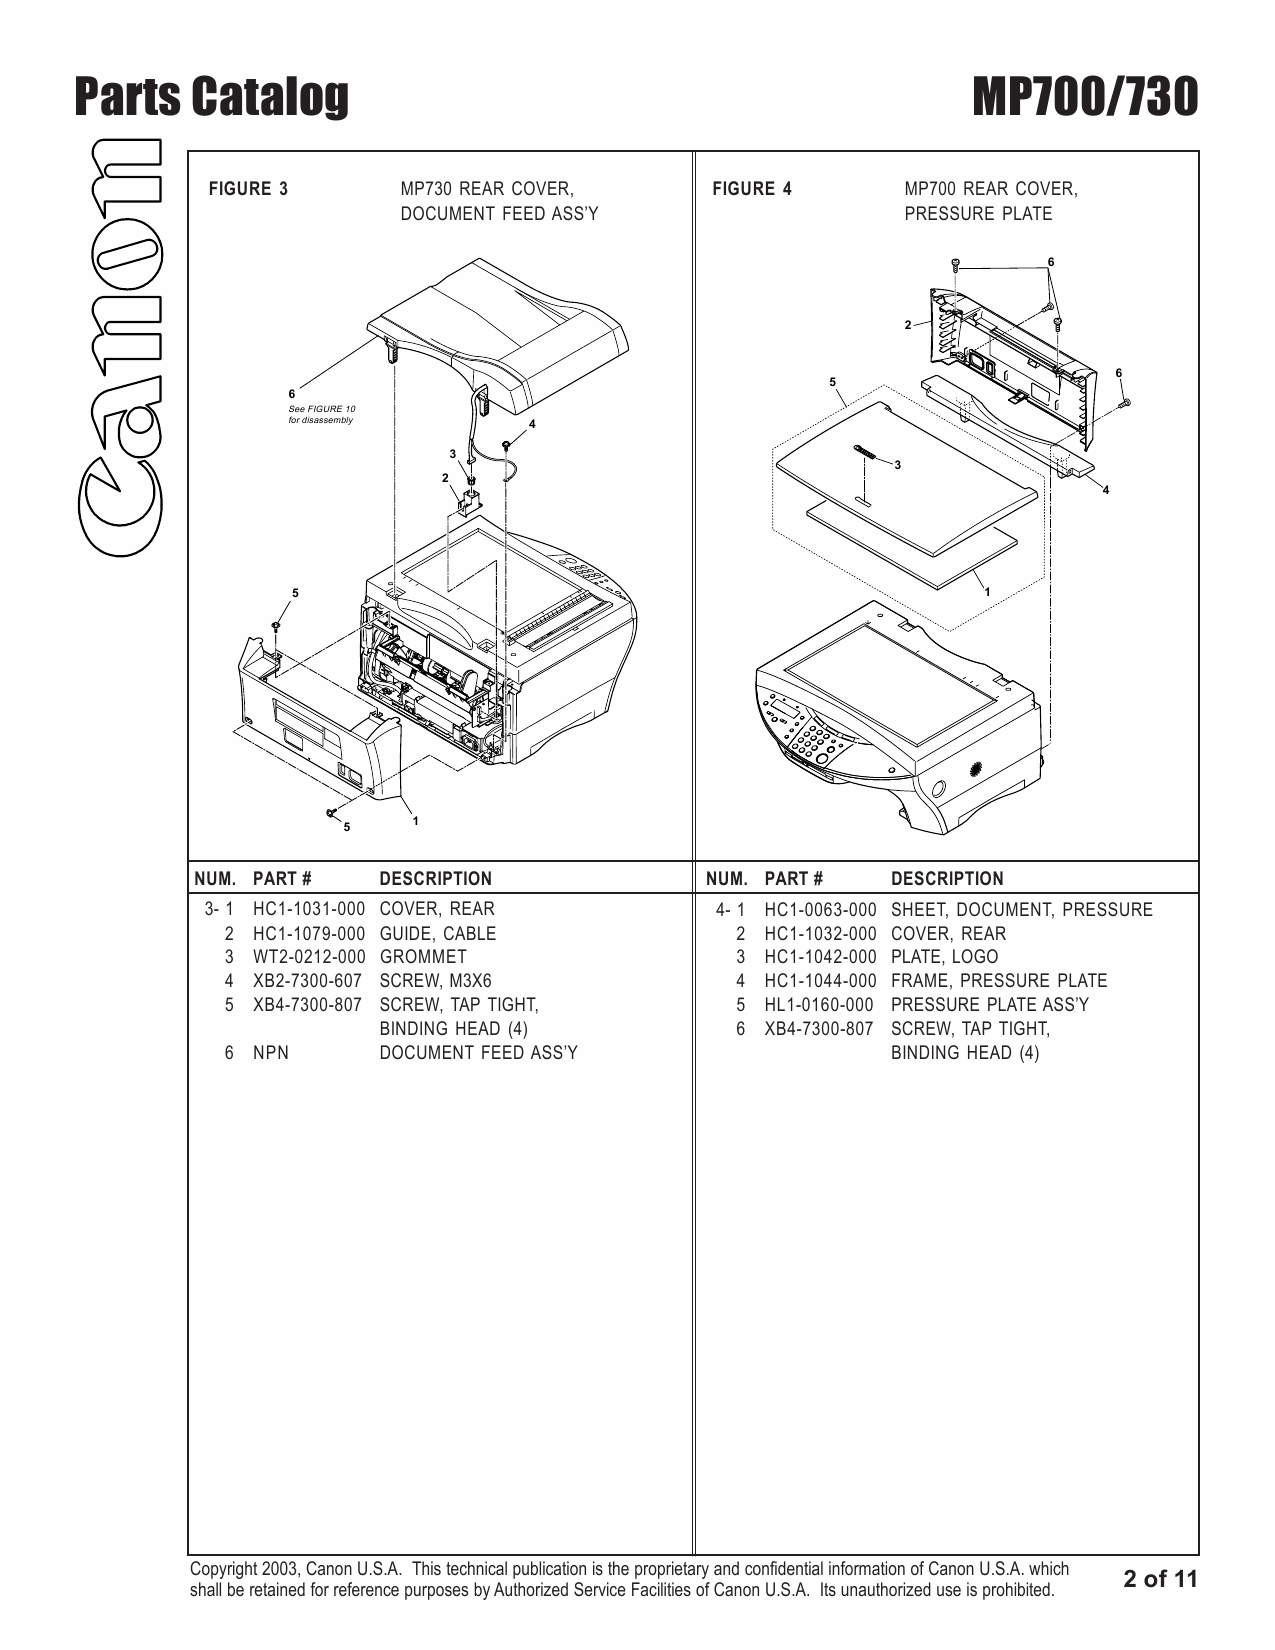 Canon PIXMA MP700 MP730 Parts Catalog Manual-3